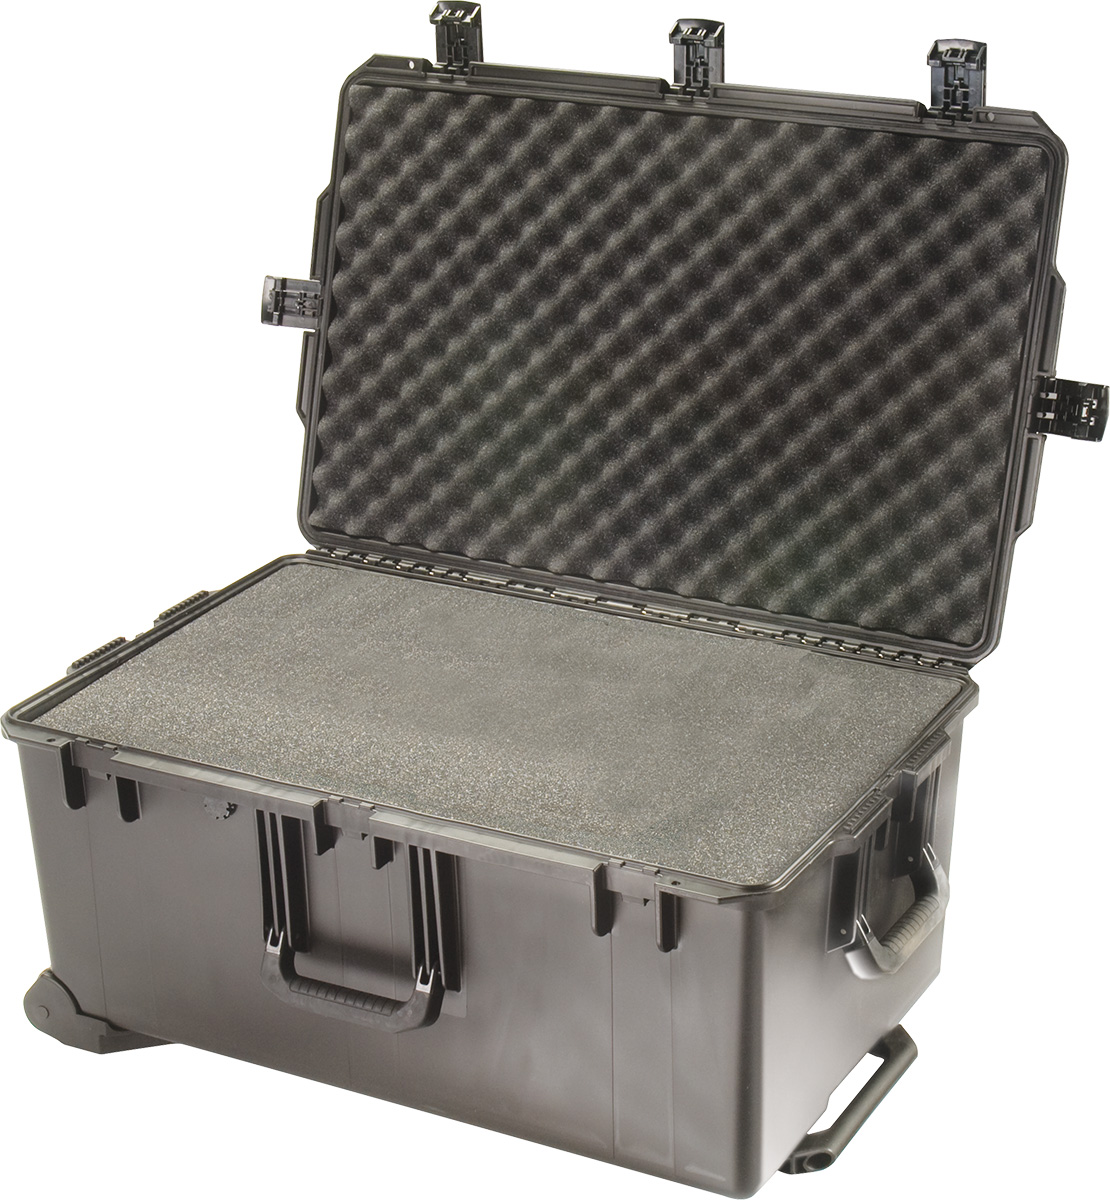 pelican im2975 pelican im2975 padded large travel case